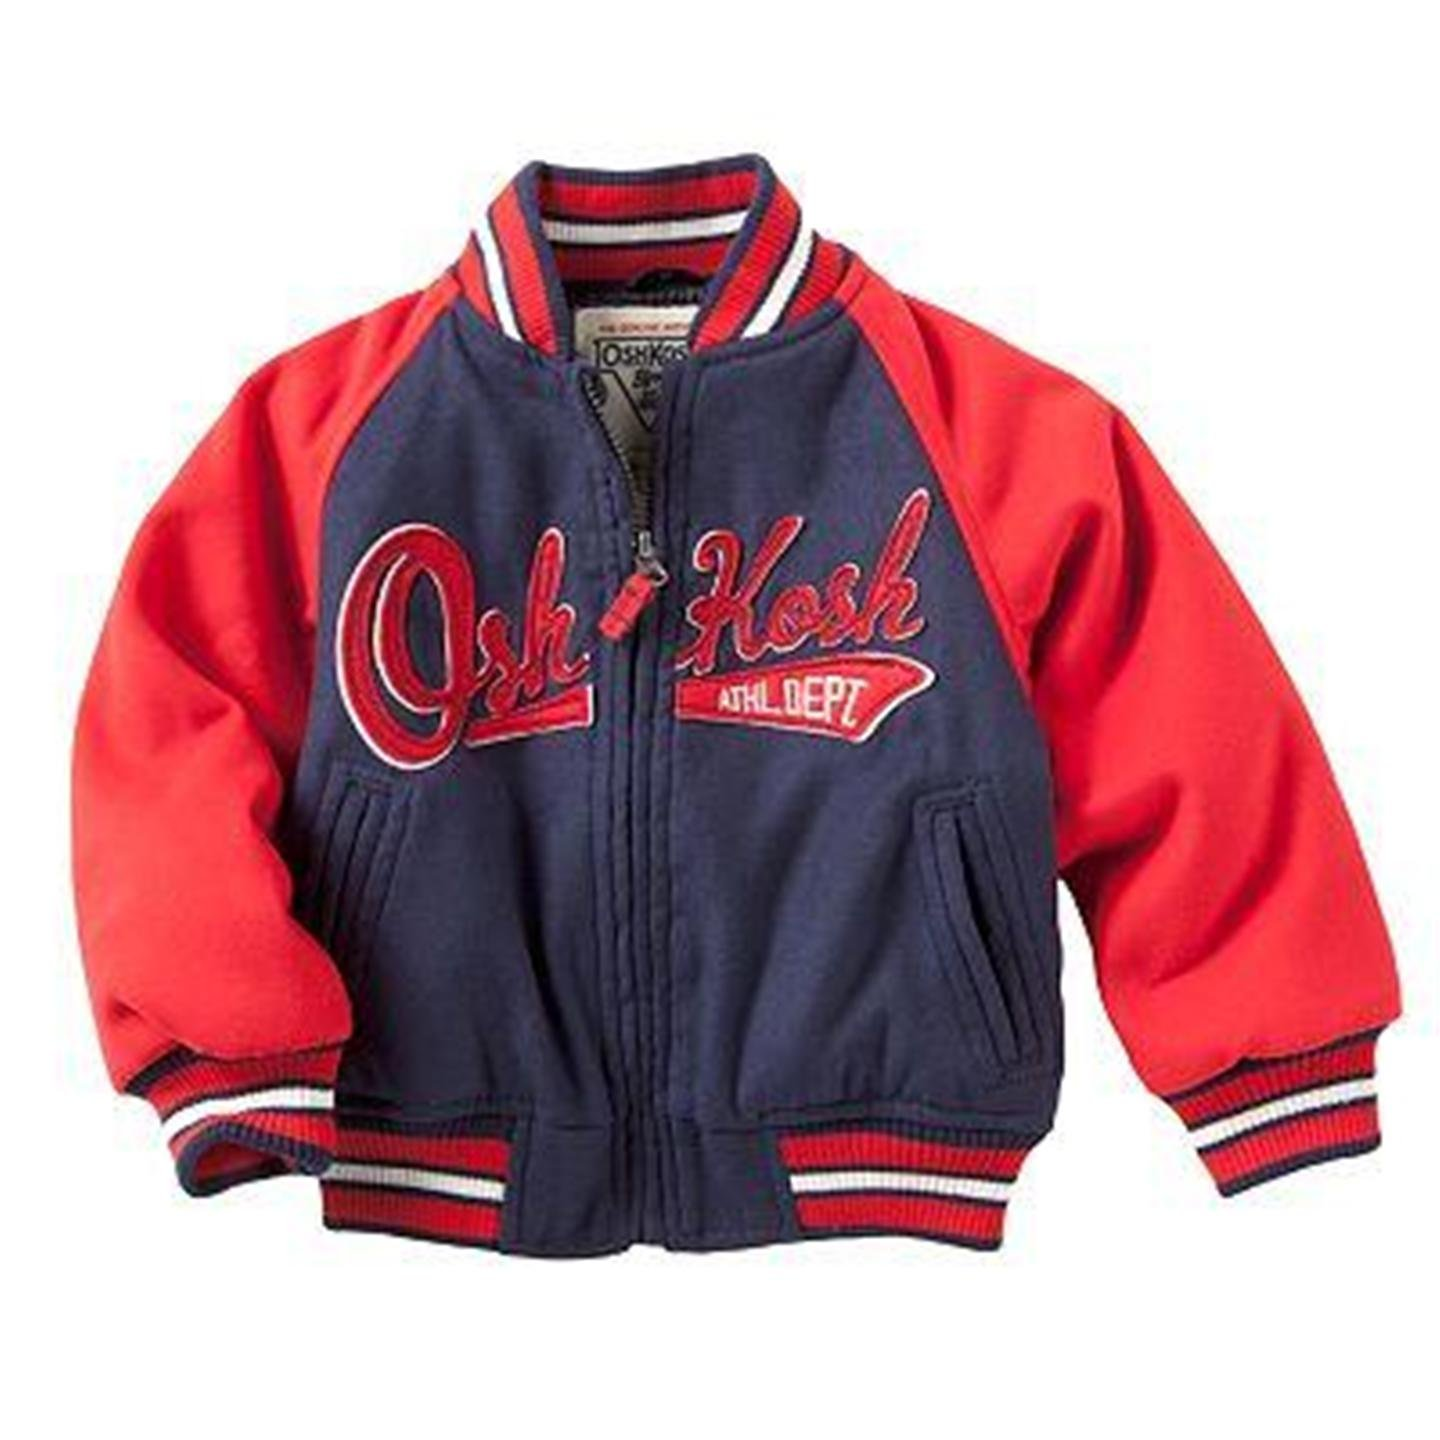 OshKosh B'Gosh Baseball Jacket - Toddler Little Boys (3T)